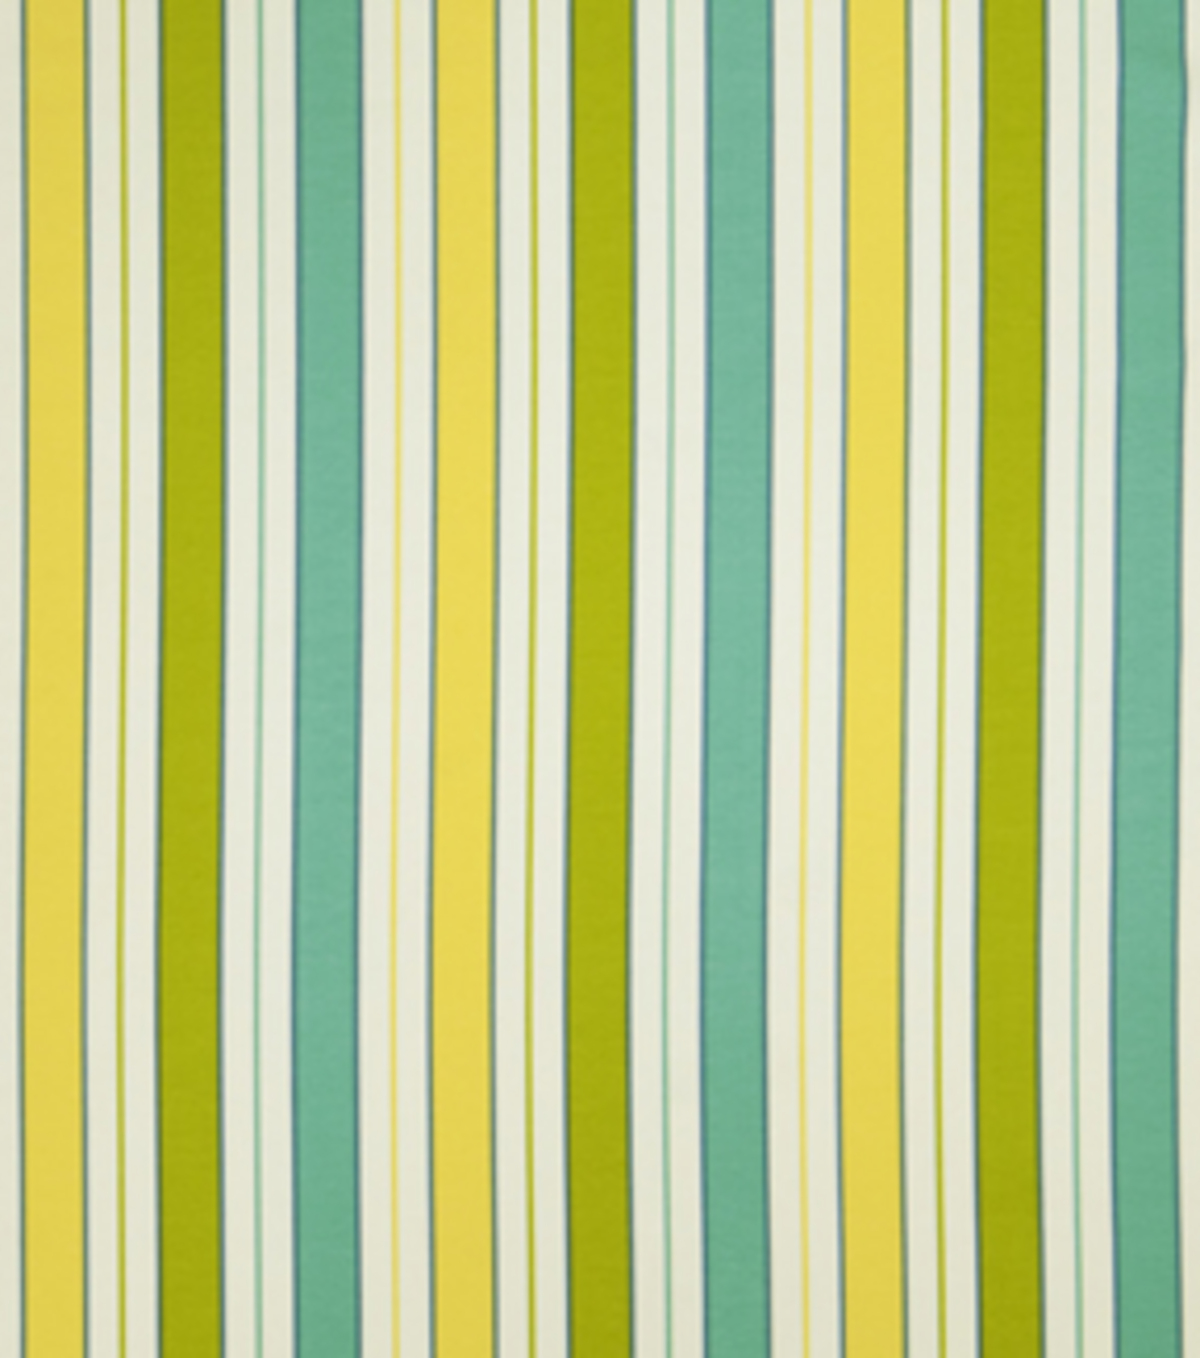 Home Decor 8\u0022x8\u0022 Fabric Swatch-Eaton Square Stripe Balcony-Poolside